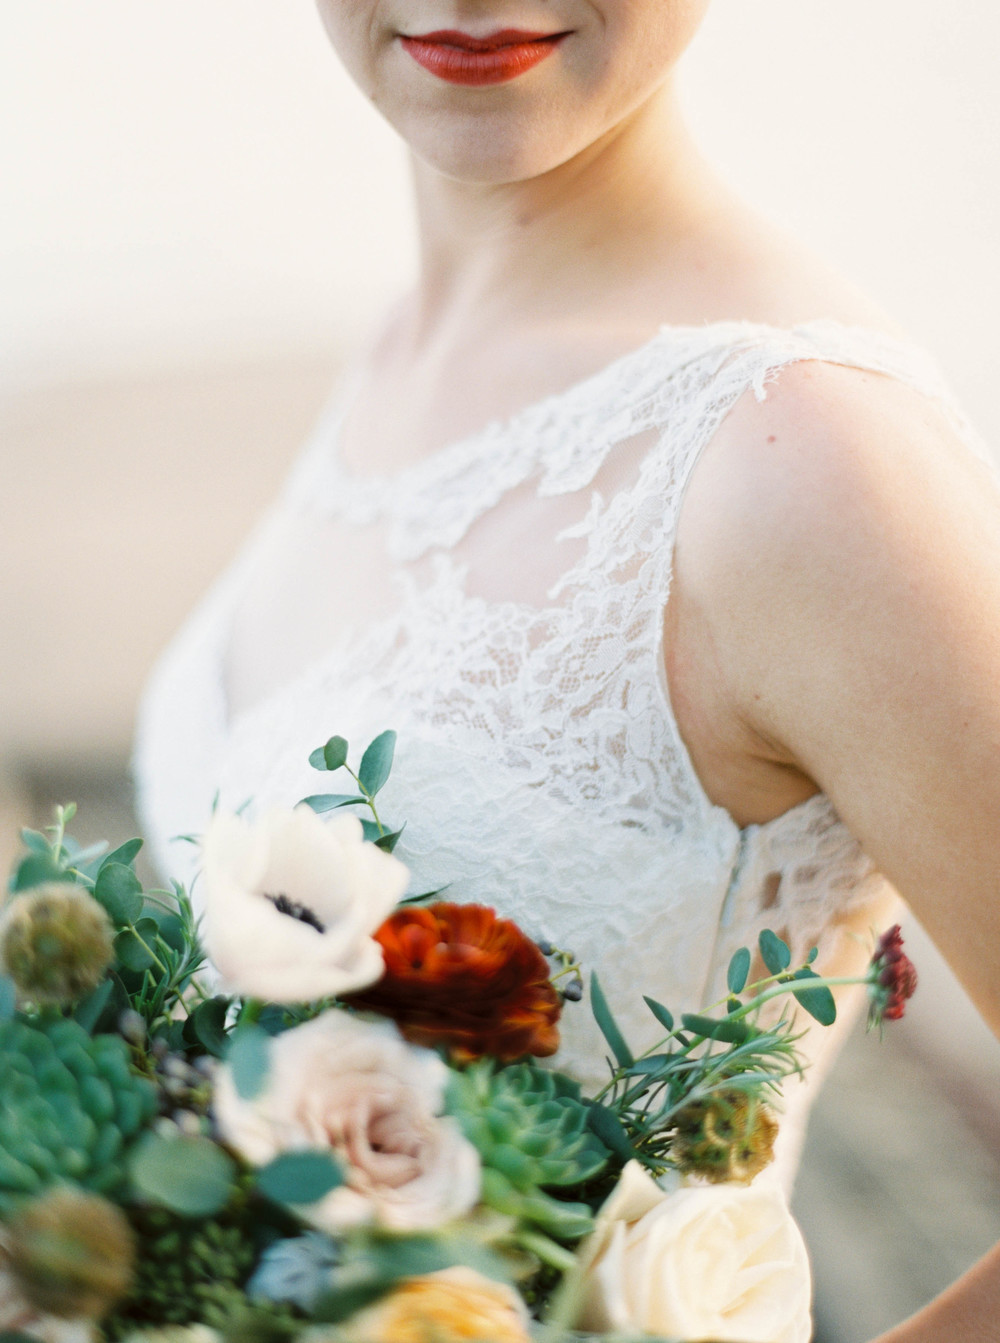 Loose, untamed bridal bouquet with olive branches, ranunculus, and succulents